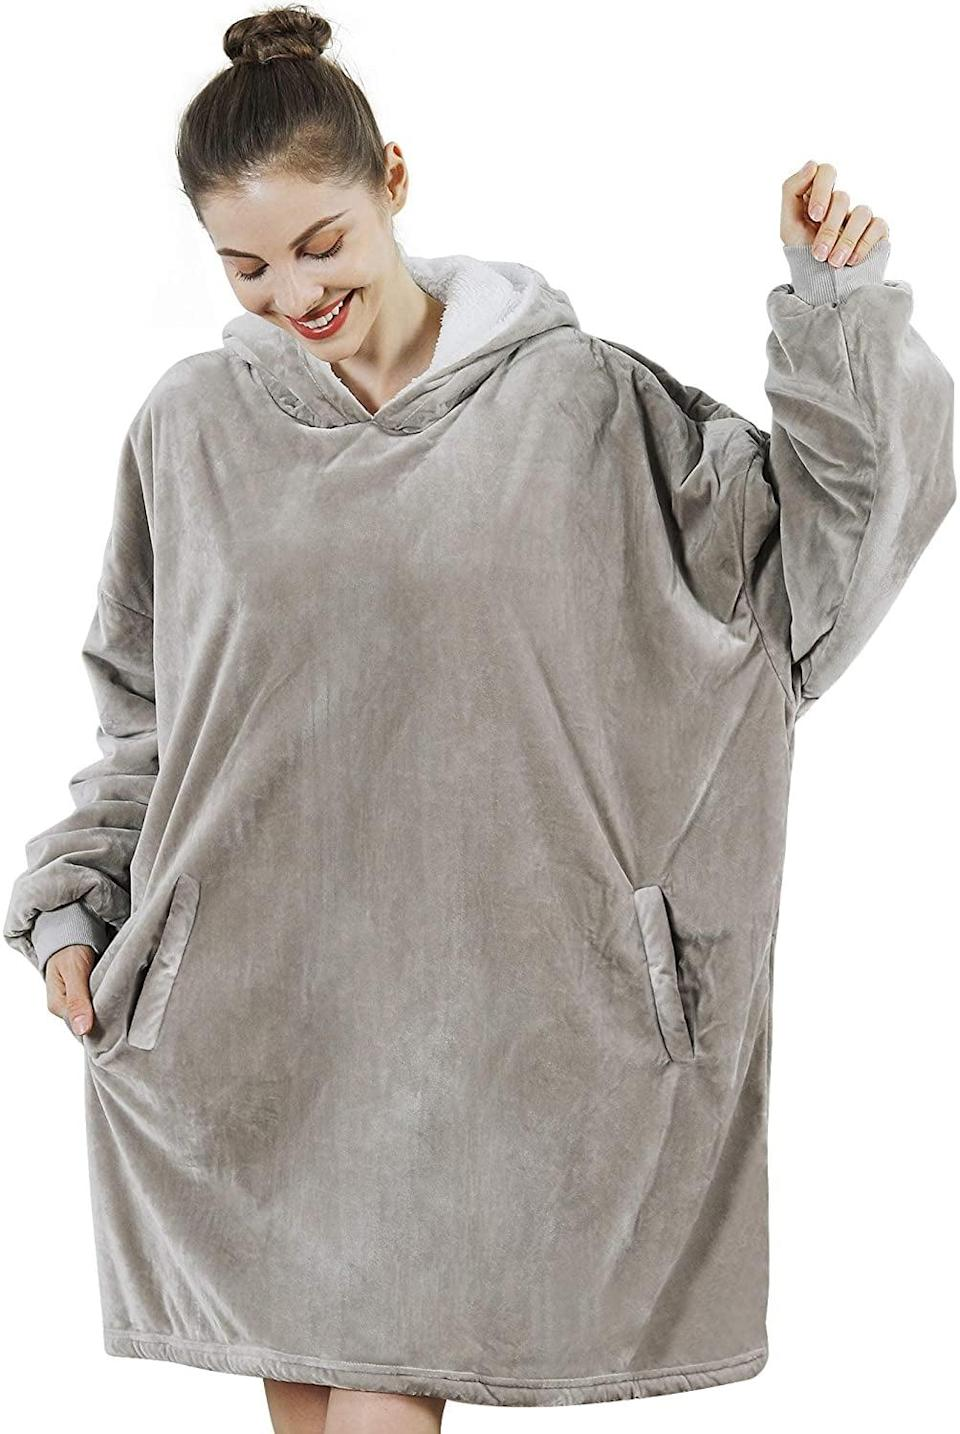 <p>What's not to love about the <span>AmyHomie Blanket Sweatshirt</span> ($24, originally $30)? You'll be so cozy and never want to take it off.</p>